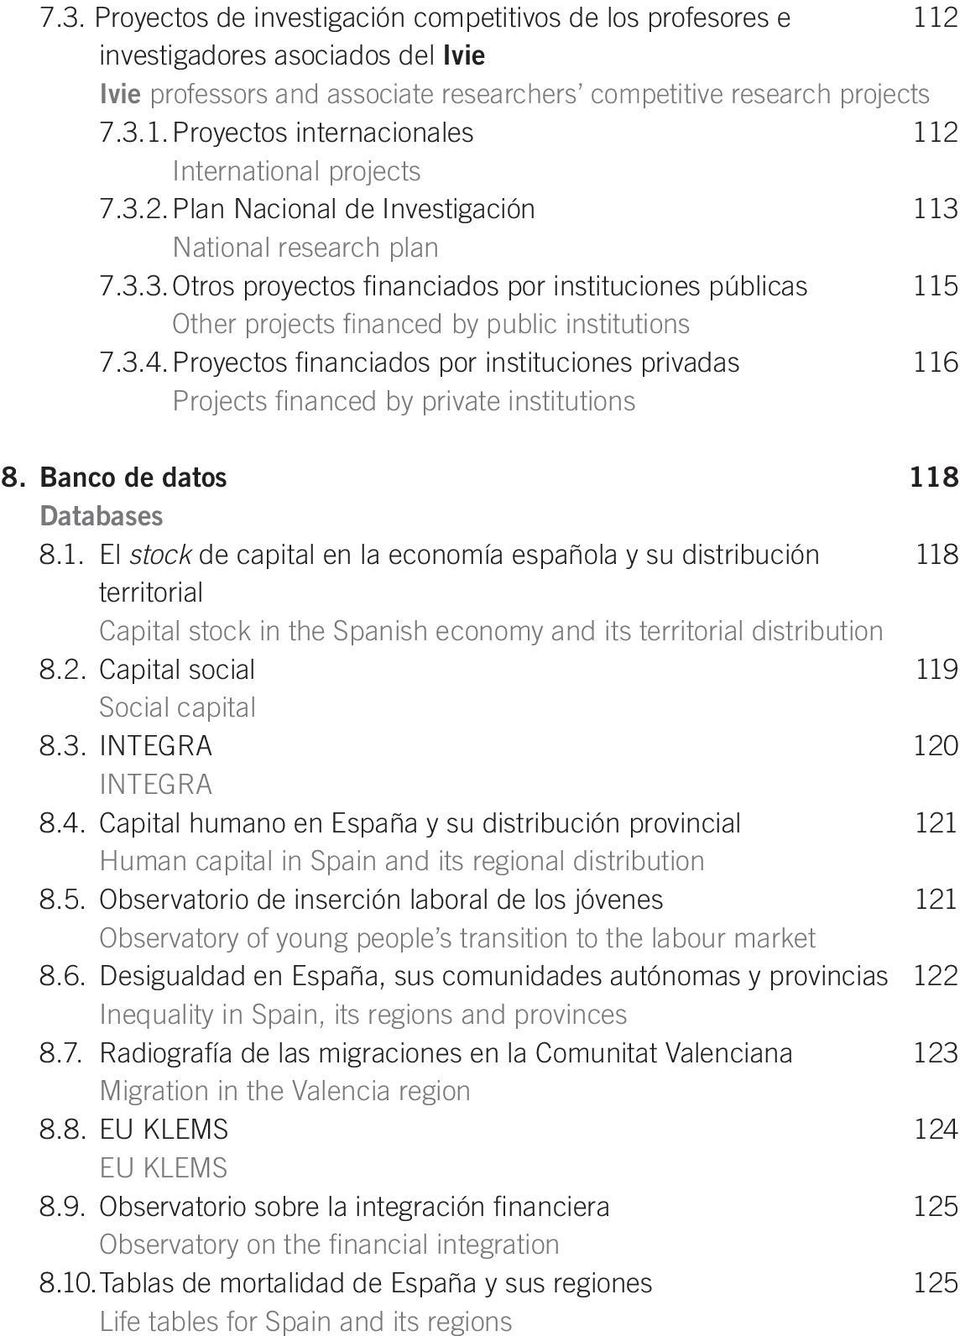 Proyectos financiados por instituciones privadas 11